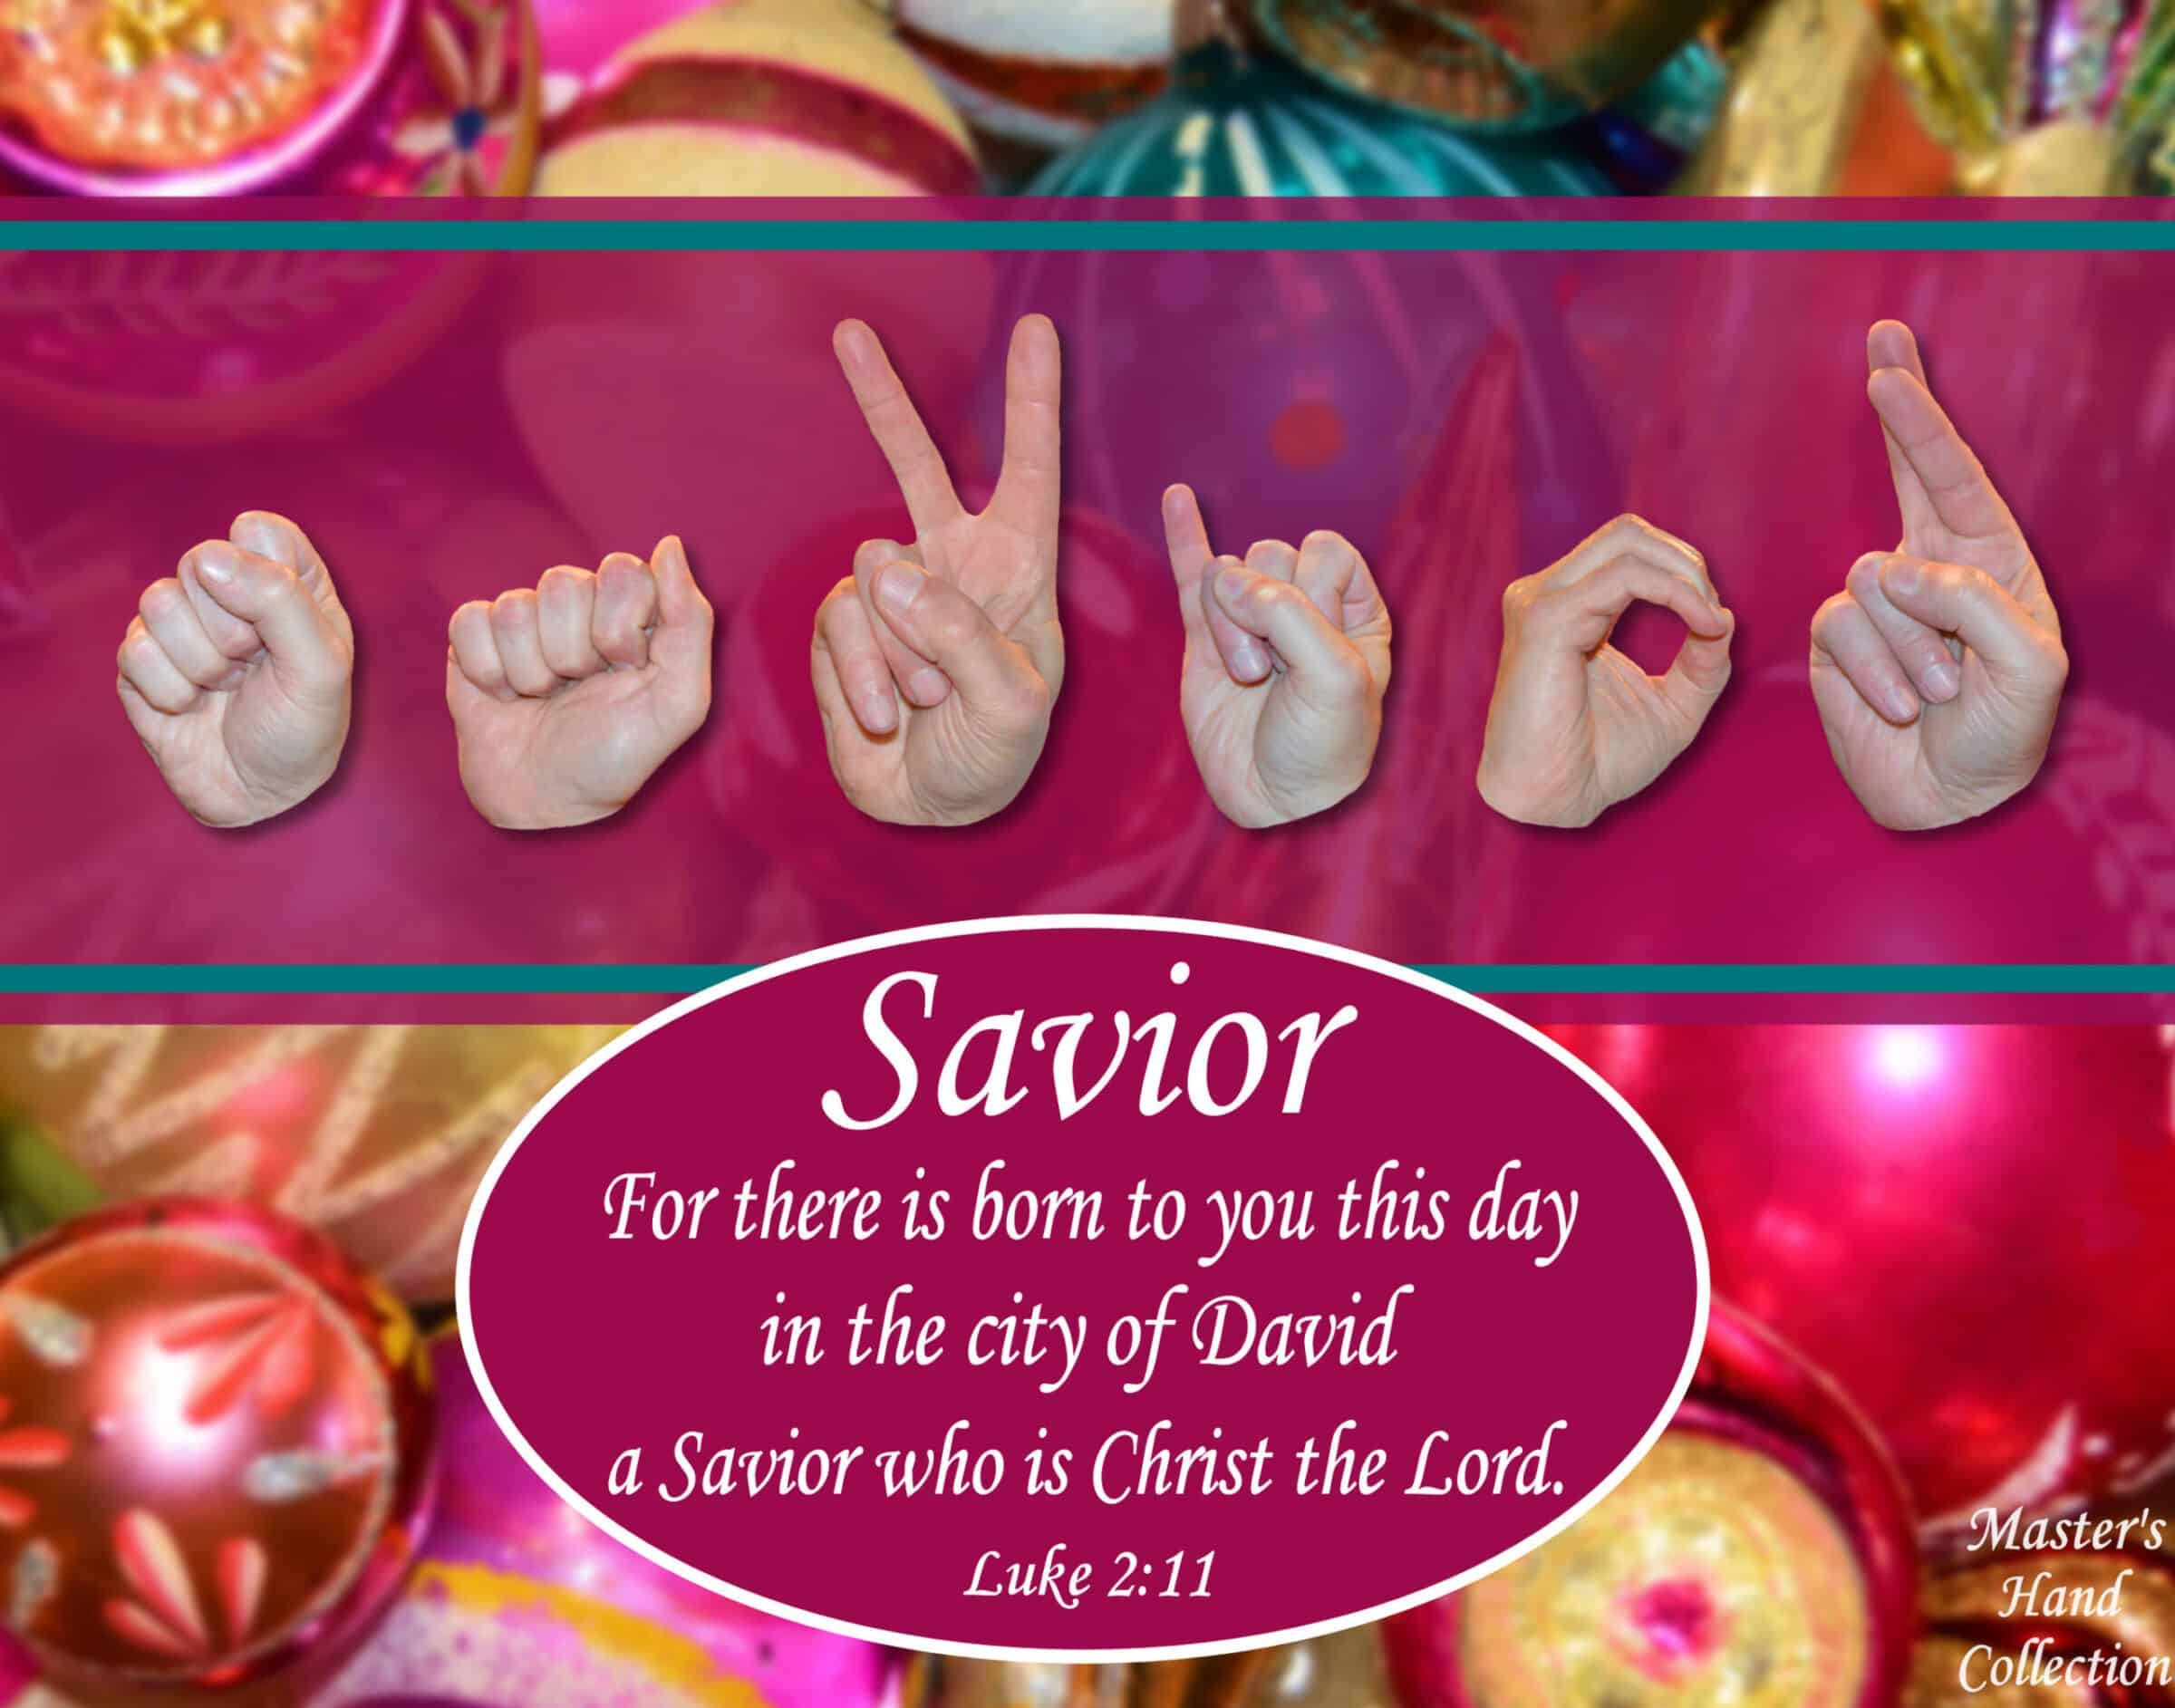 artwork titled Savior by Master's Hand Collection